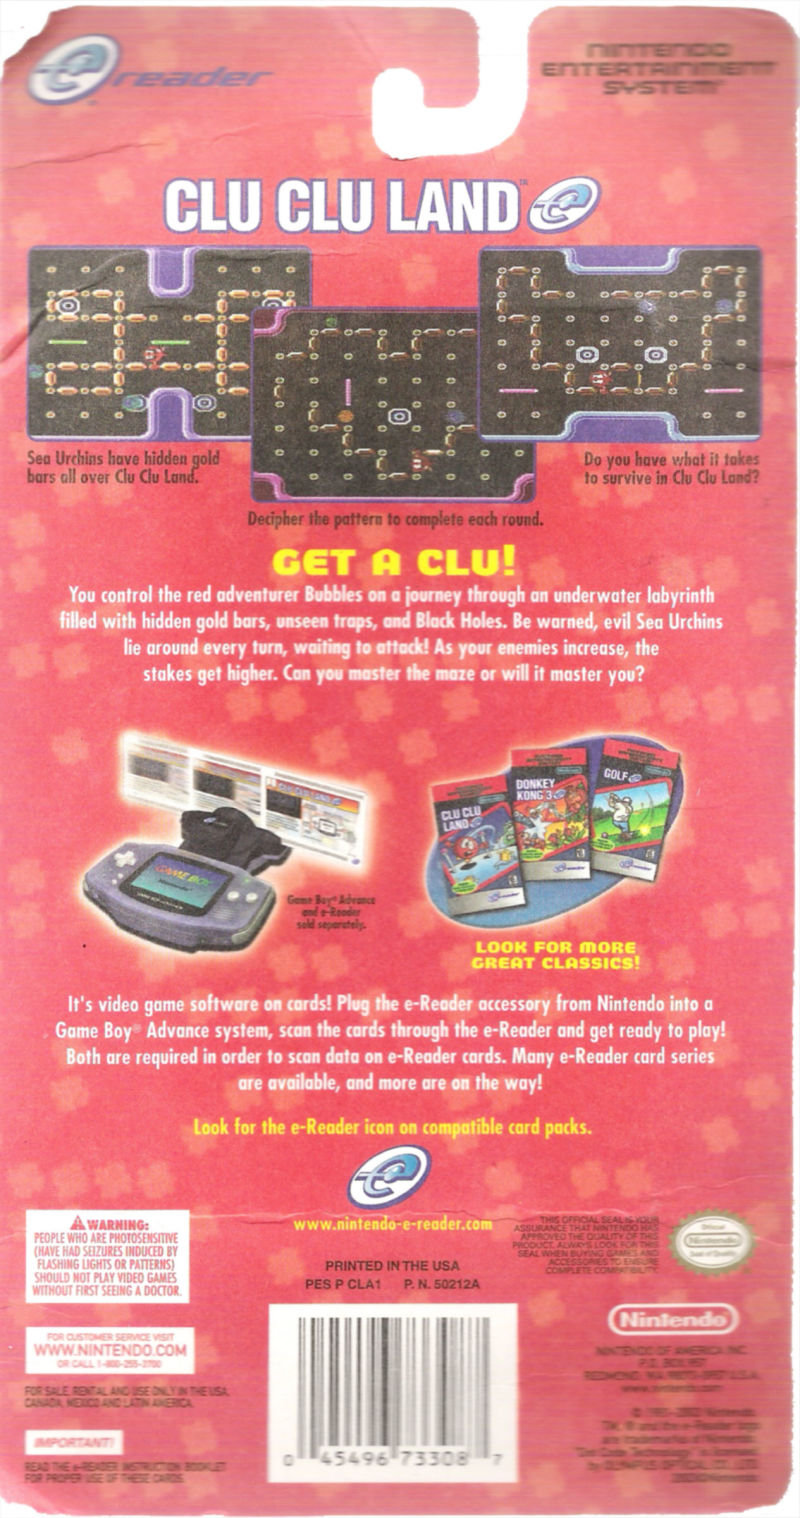 Clu Clu Land Game Boy Advance Back Cover